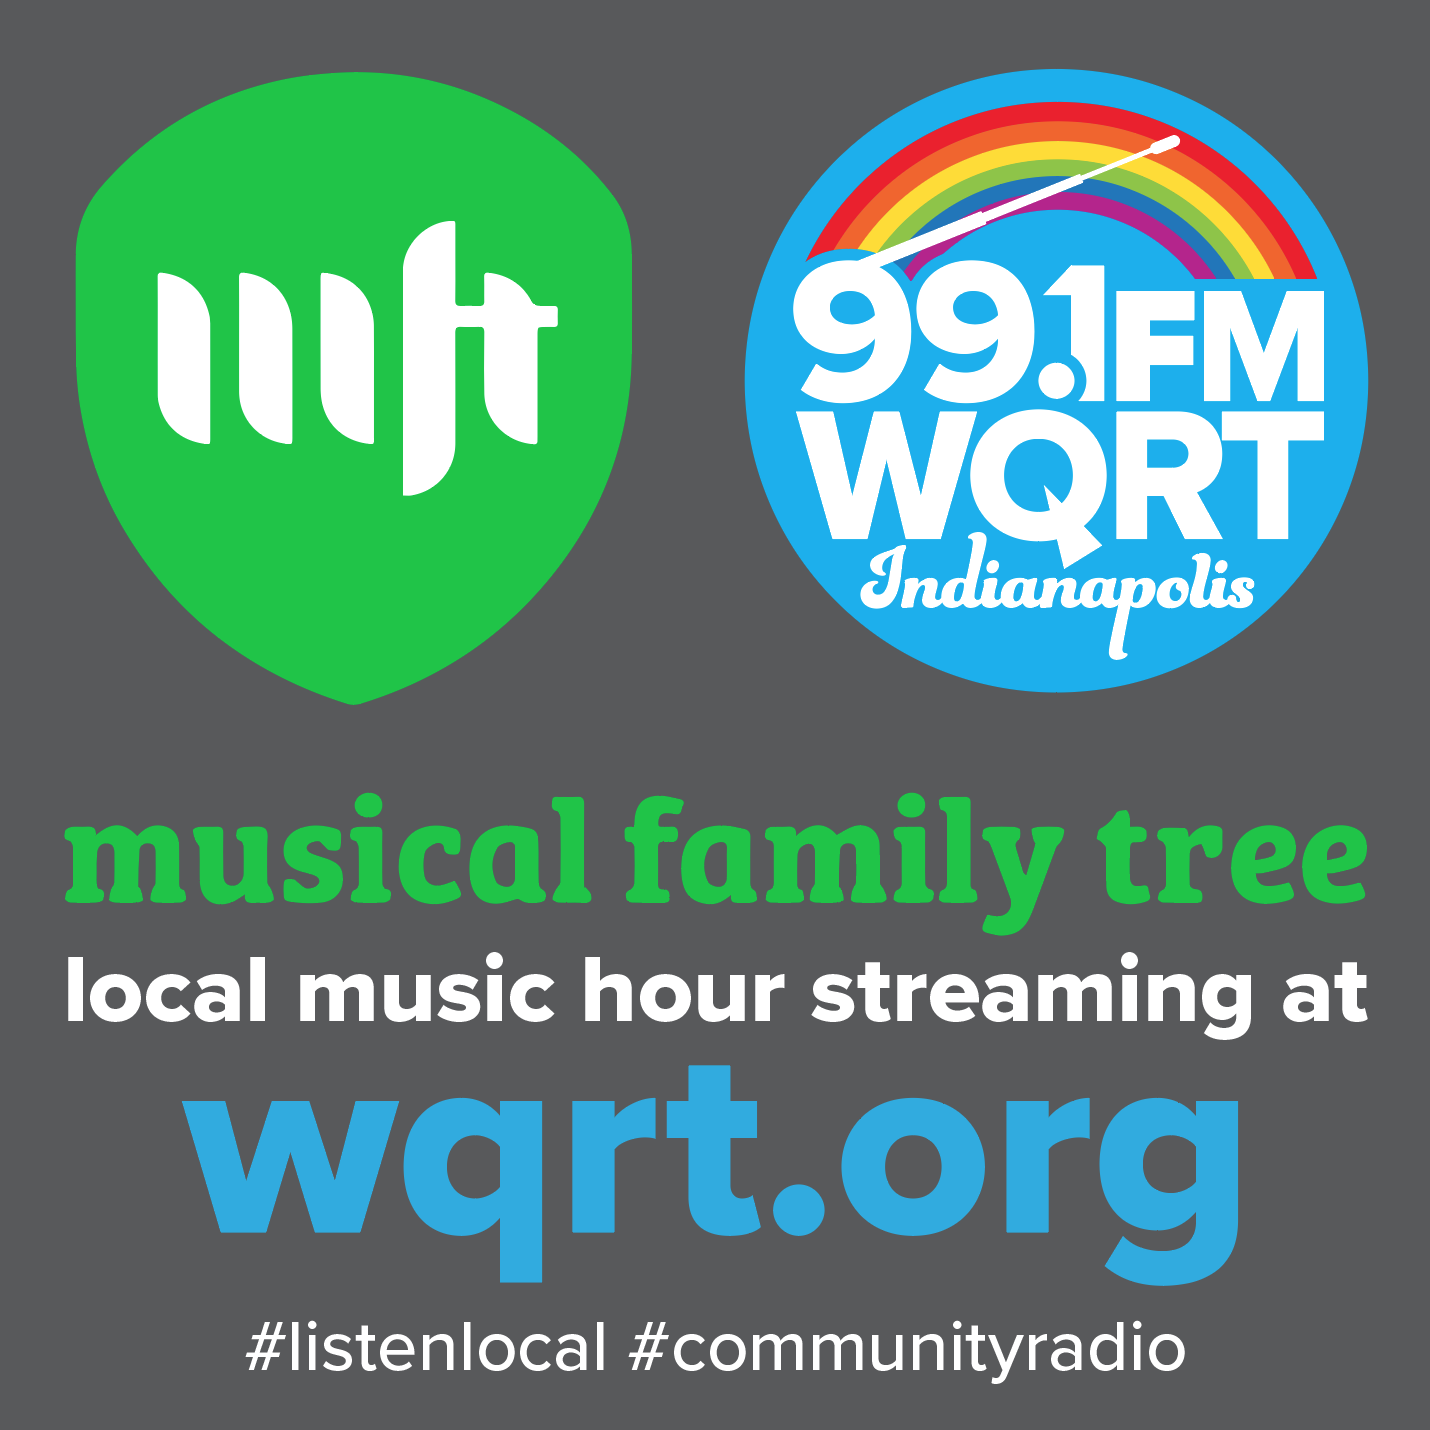 Local Music Hour by Musical Family Tree - Local non-profit and Indiana music archive spotlighting musicians, interviews, and events across Indiana.Stay tuned for new programming soon! Visit MFT's site here.